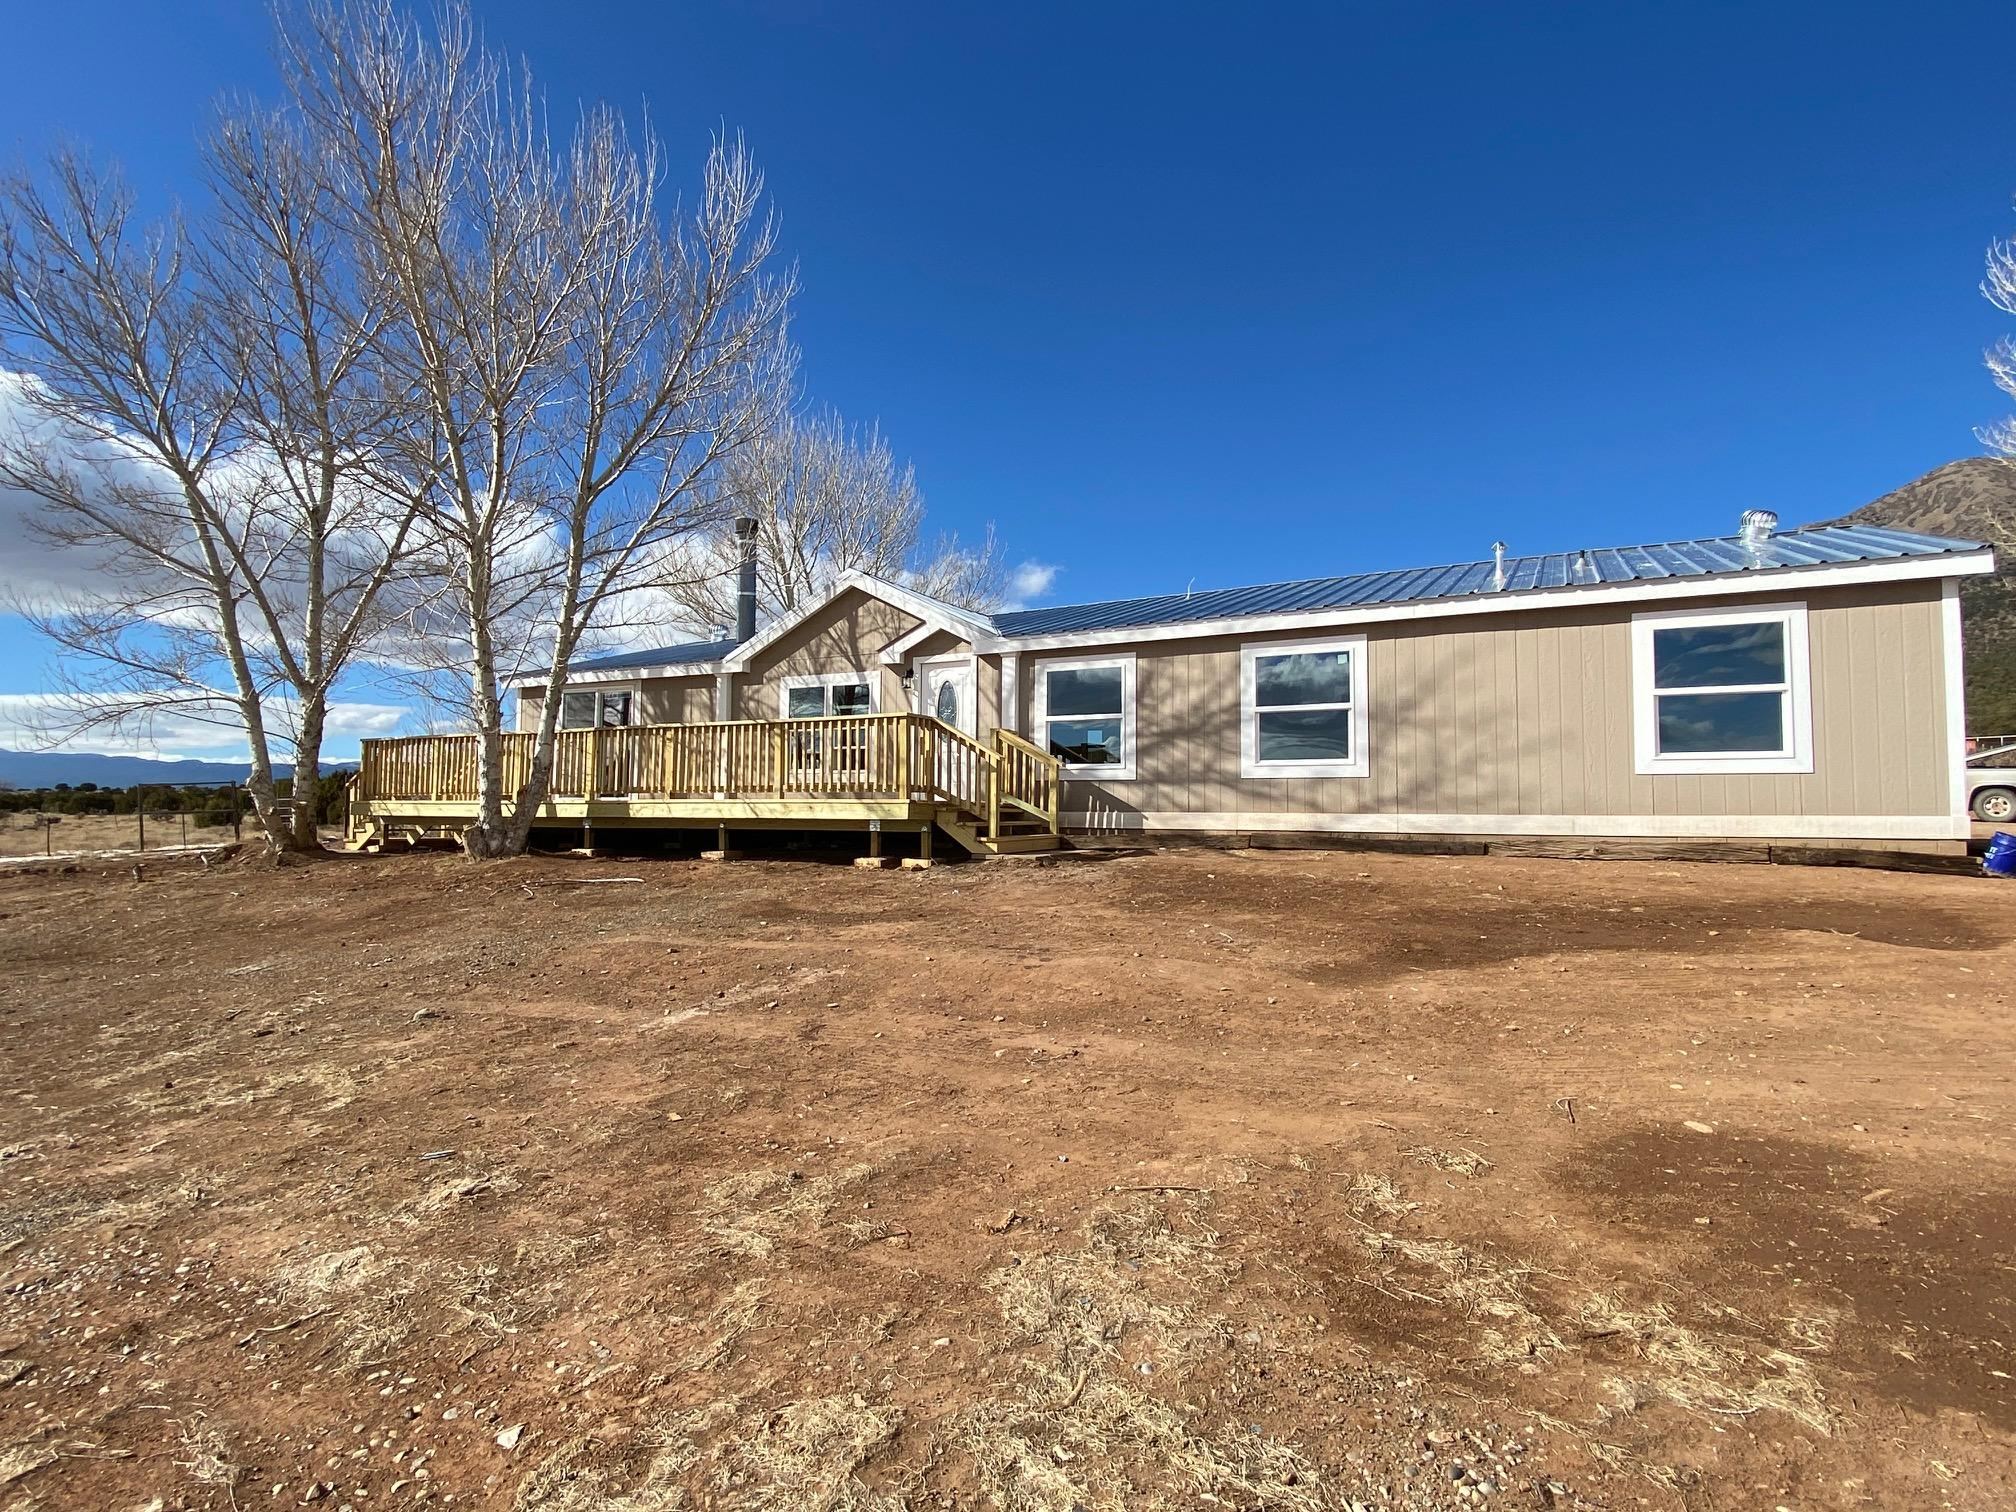 Privacy, views, and 5 bedrooms are featured in this newly remodeled home in North Edgewood.  Over 3 acres of privacy, new septic being installed, private well and Entranosa is one house away.